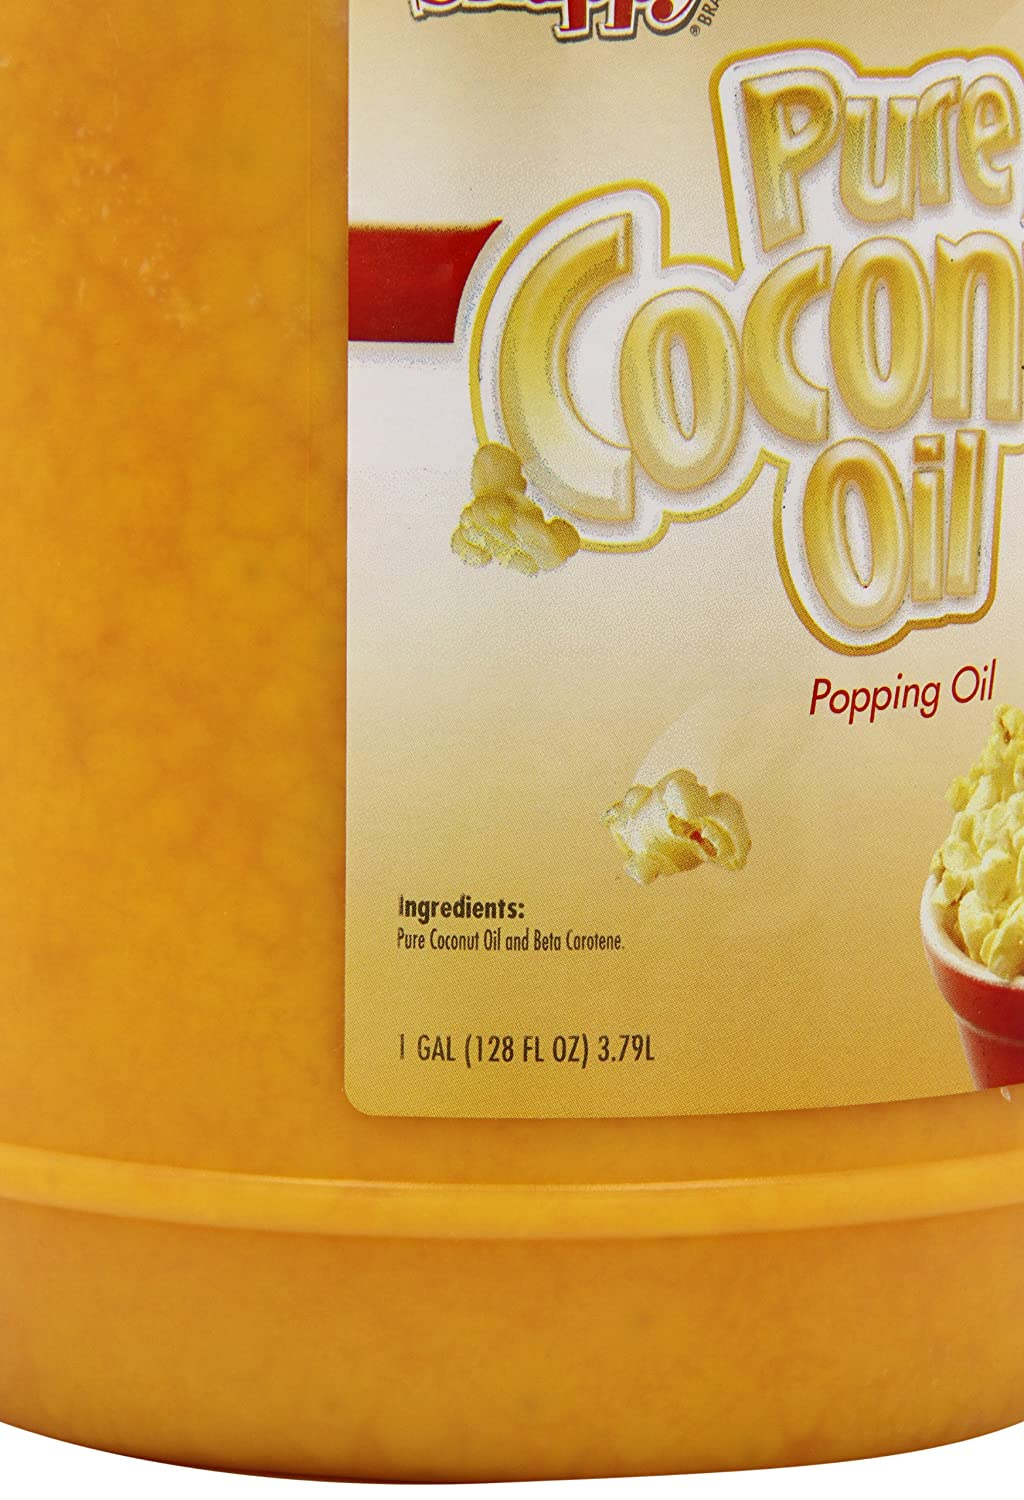 Amazon.com : Snappy Popcorn Colored Coconut Oil, 1 Gallon (2 Pack) : Grocery & Gourmet Food